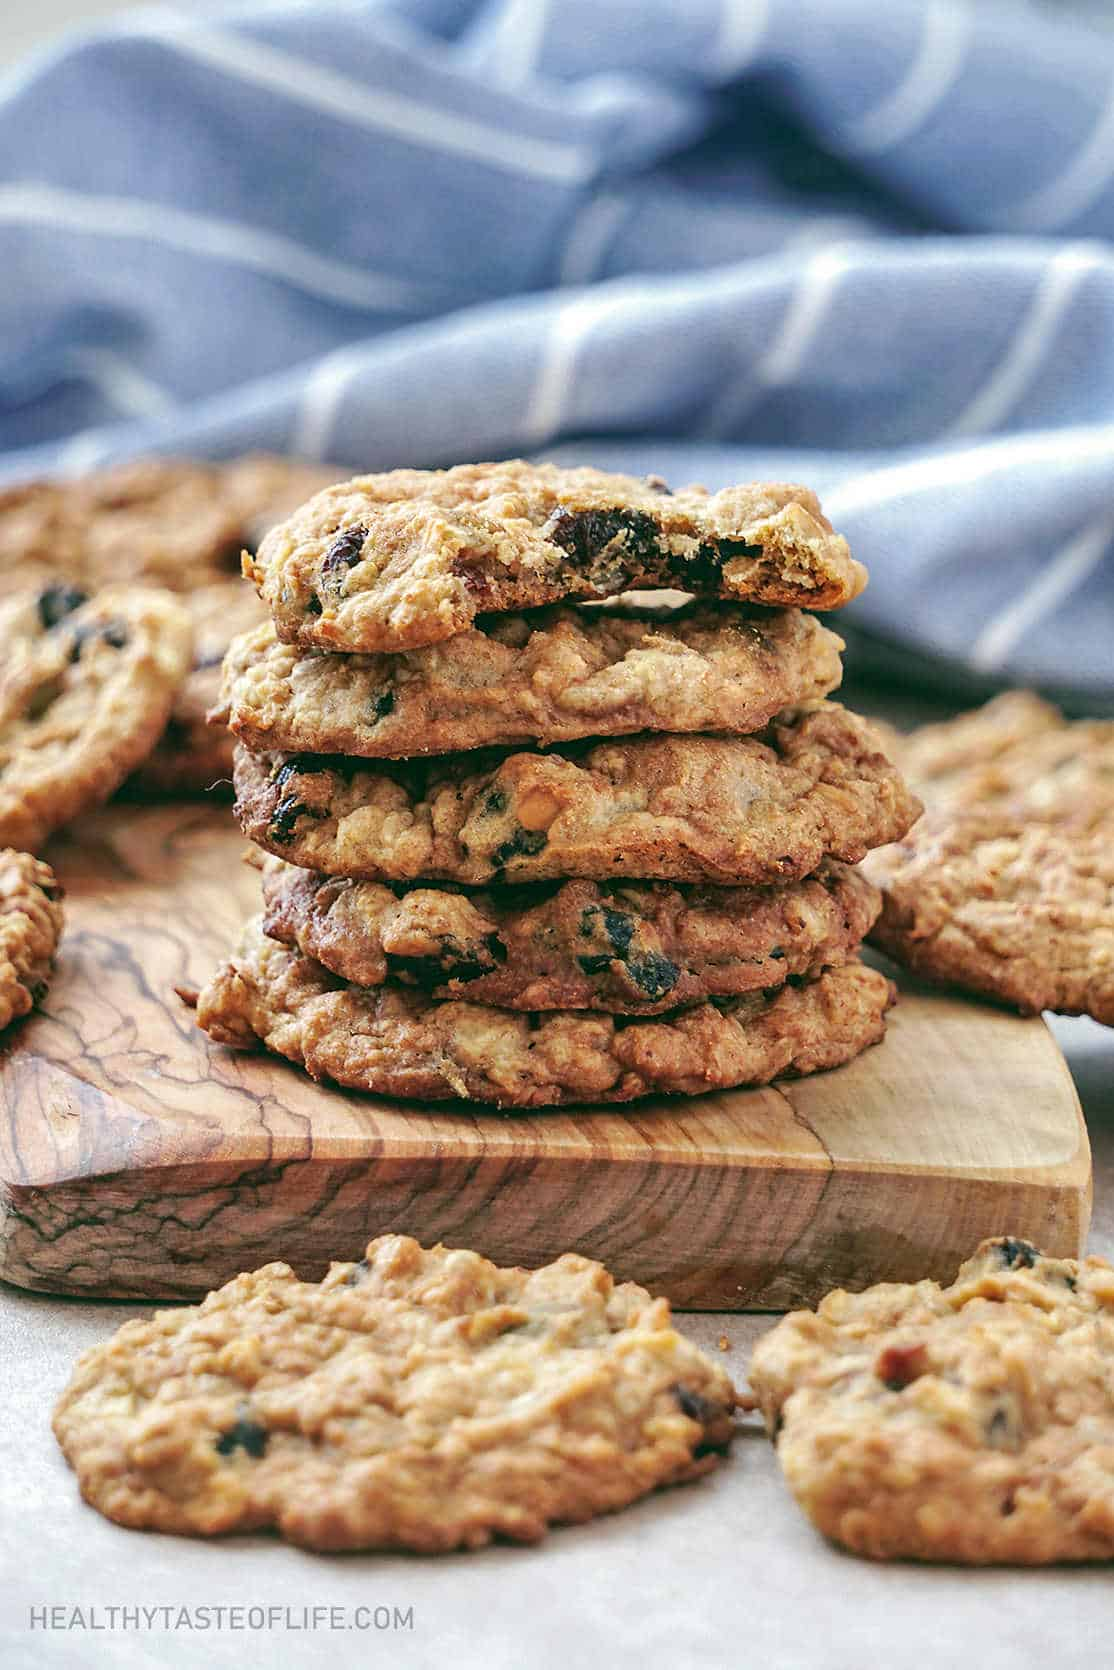 Healthy oatmeal cookies with apple sauce (gluten free vegan oatmeal cookies) made with gluten free oats and flour, coconut oil, applesauce, maple syrup: perfect for clean eating.